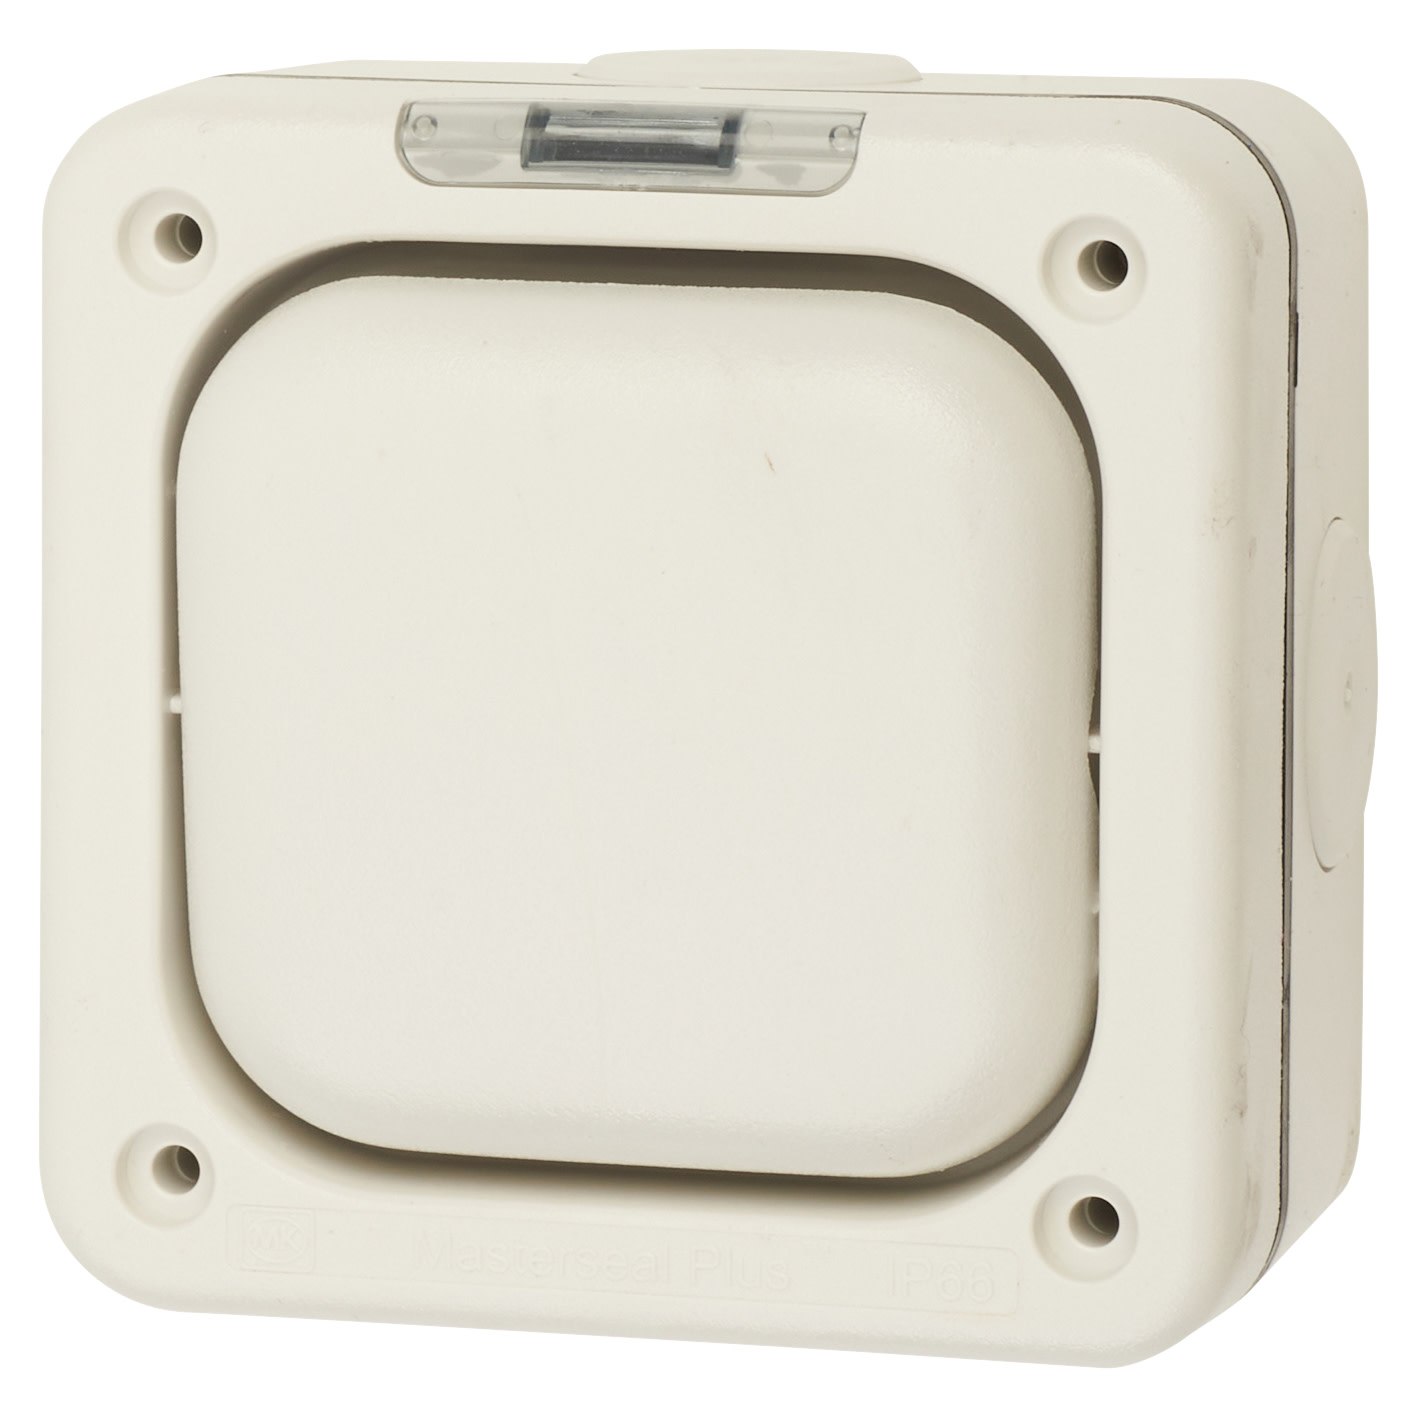 MK Masterseal Plus 10A IP66 1 Gang 2 Way Outdoor Switch - White)